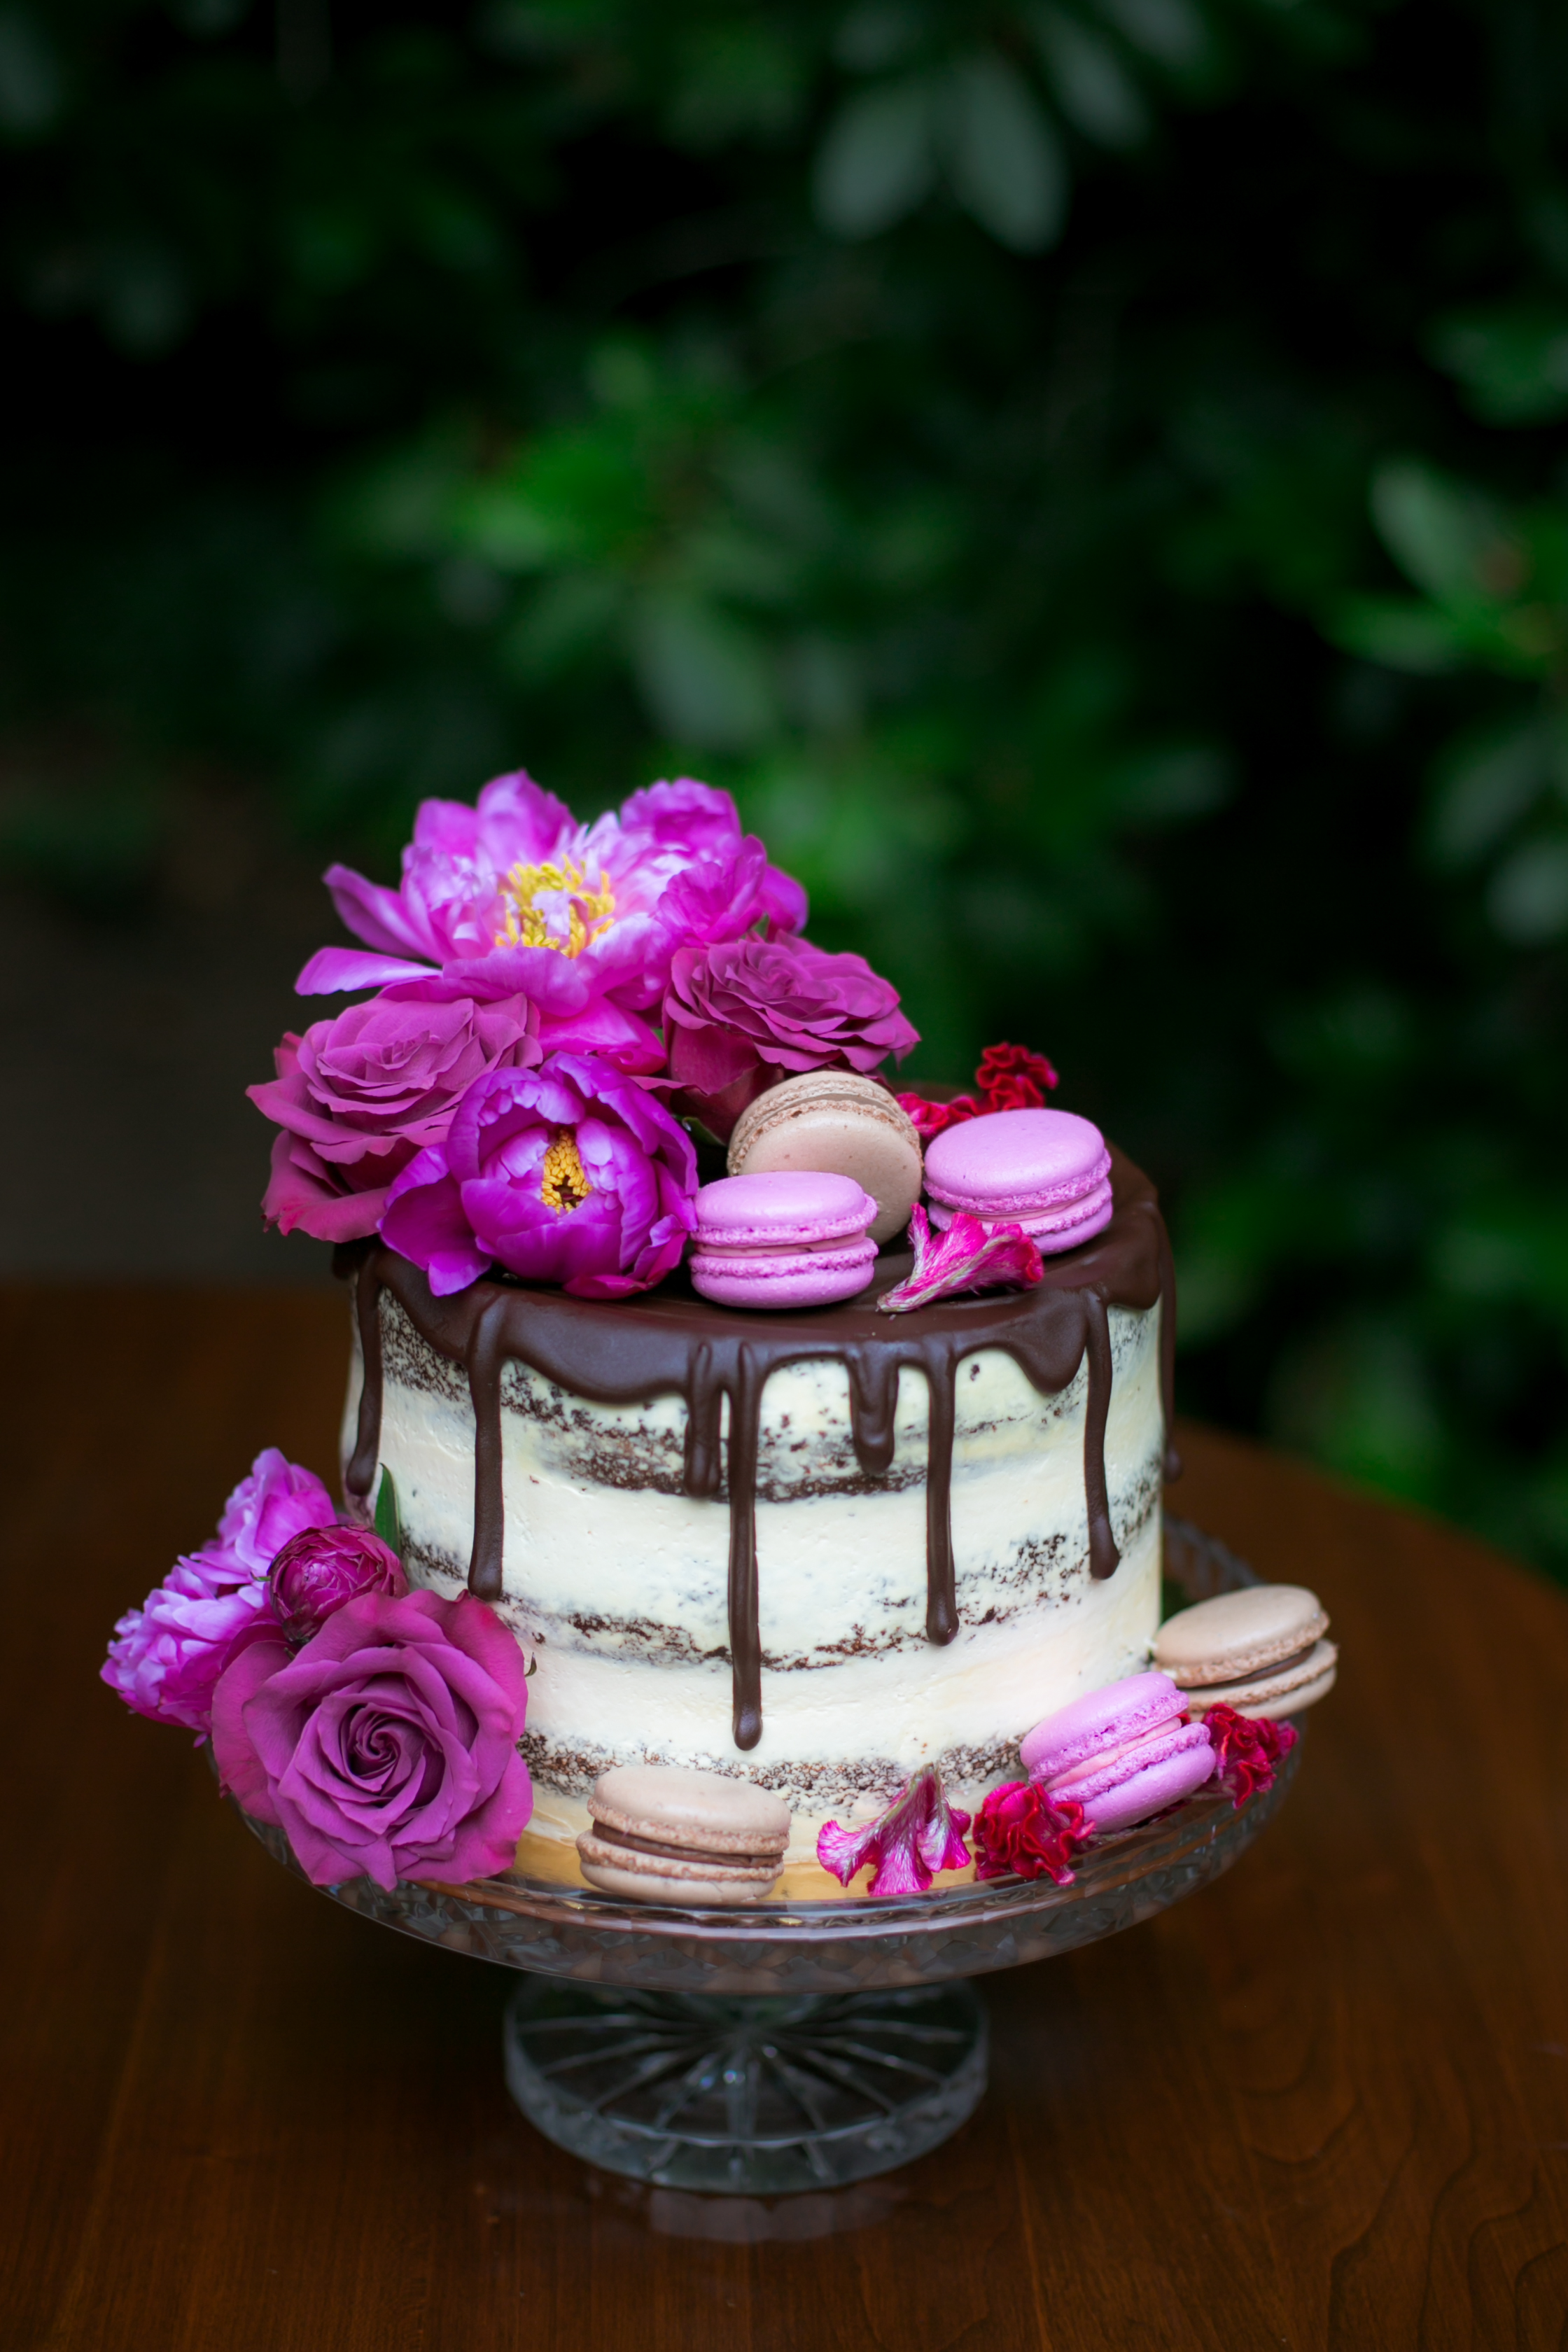 Chocolate Dripped Naked Wedding Cake with Macarons - Colchester, Connecticut Wedding Photographer